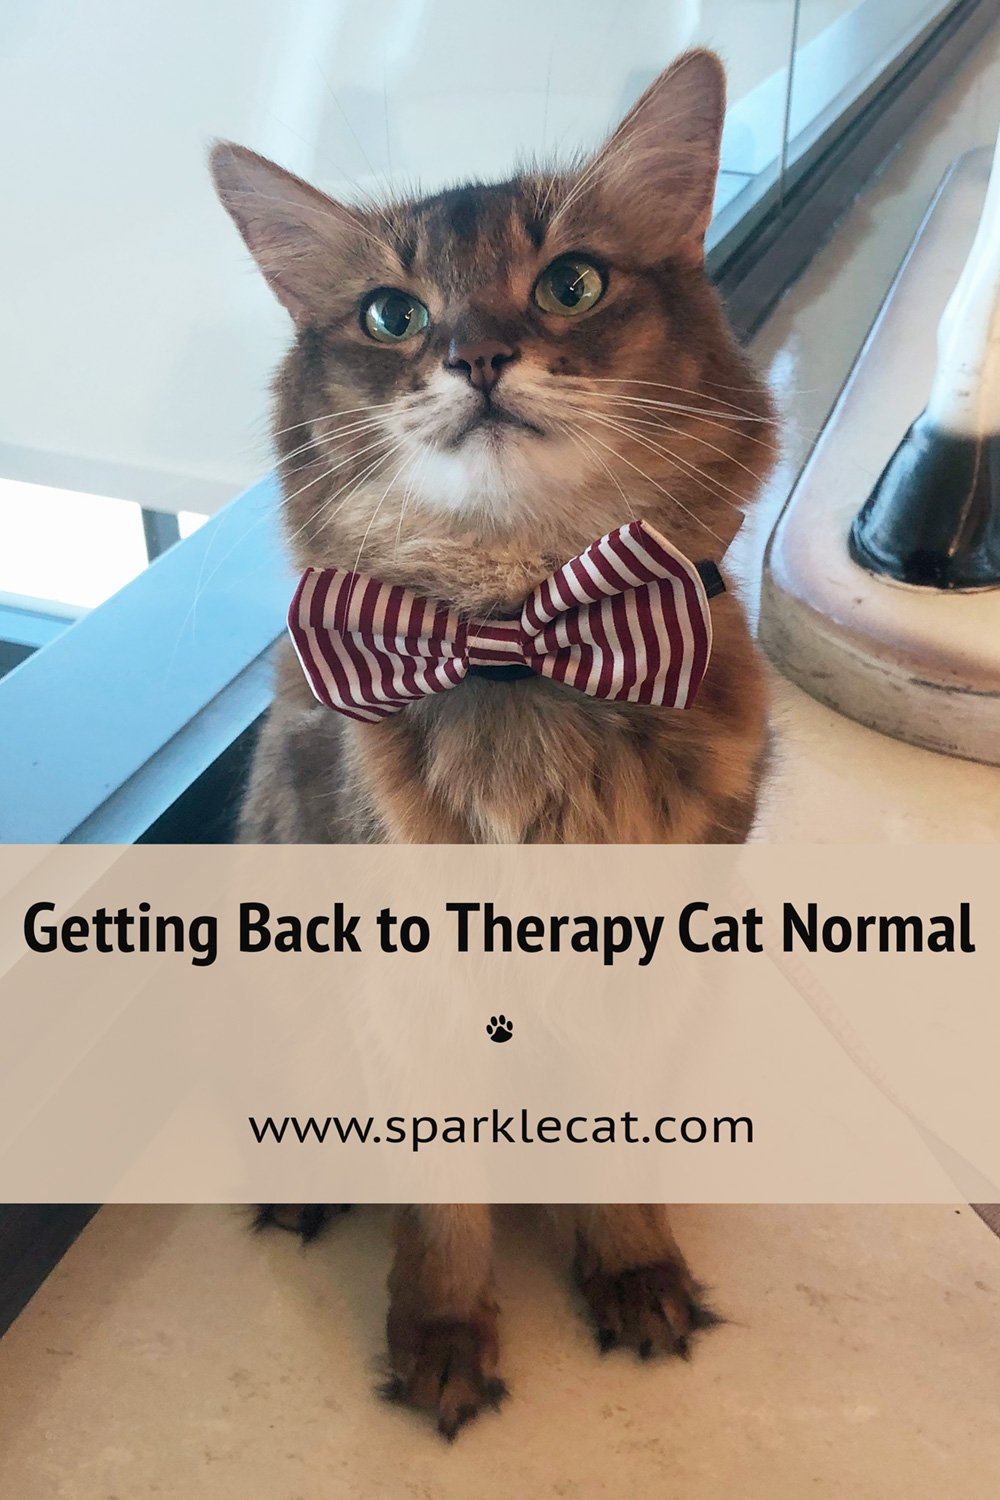 Getting Back to Therapy Cat Normal